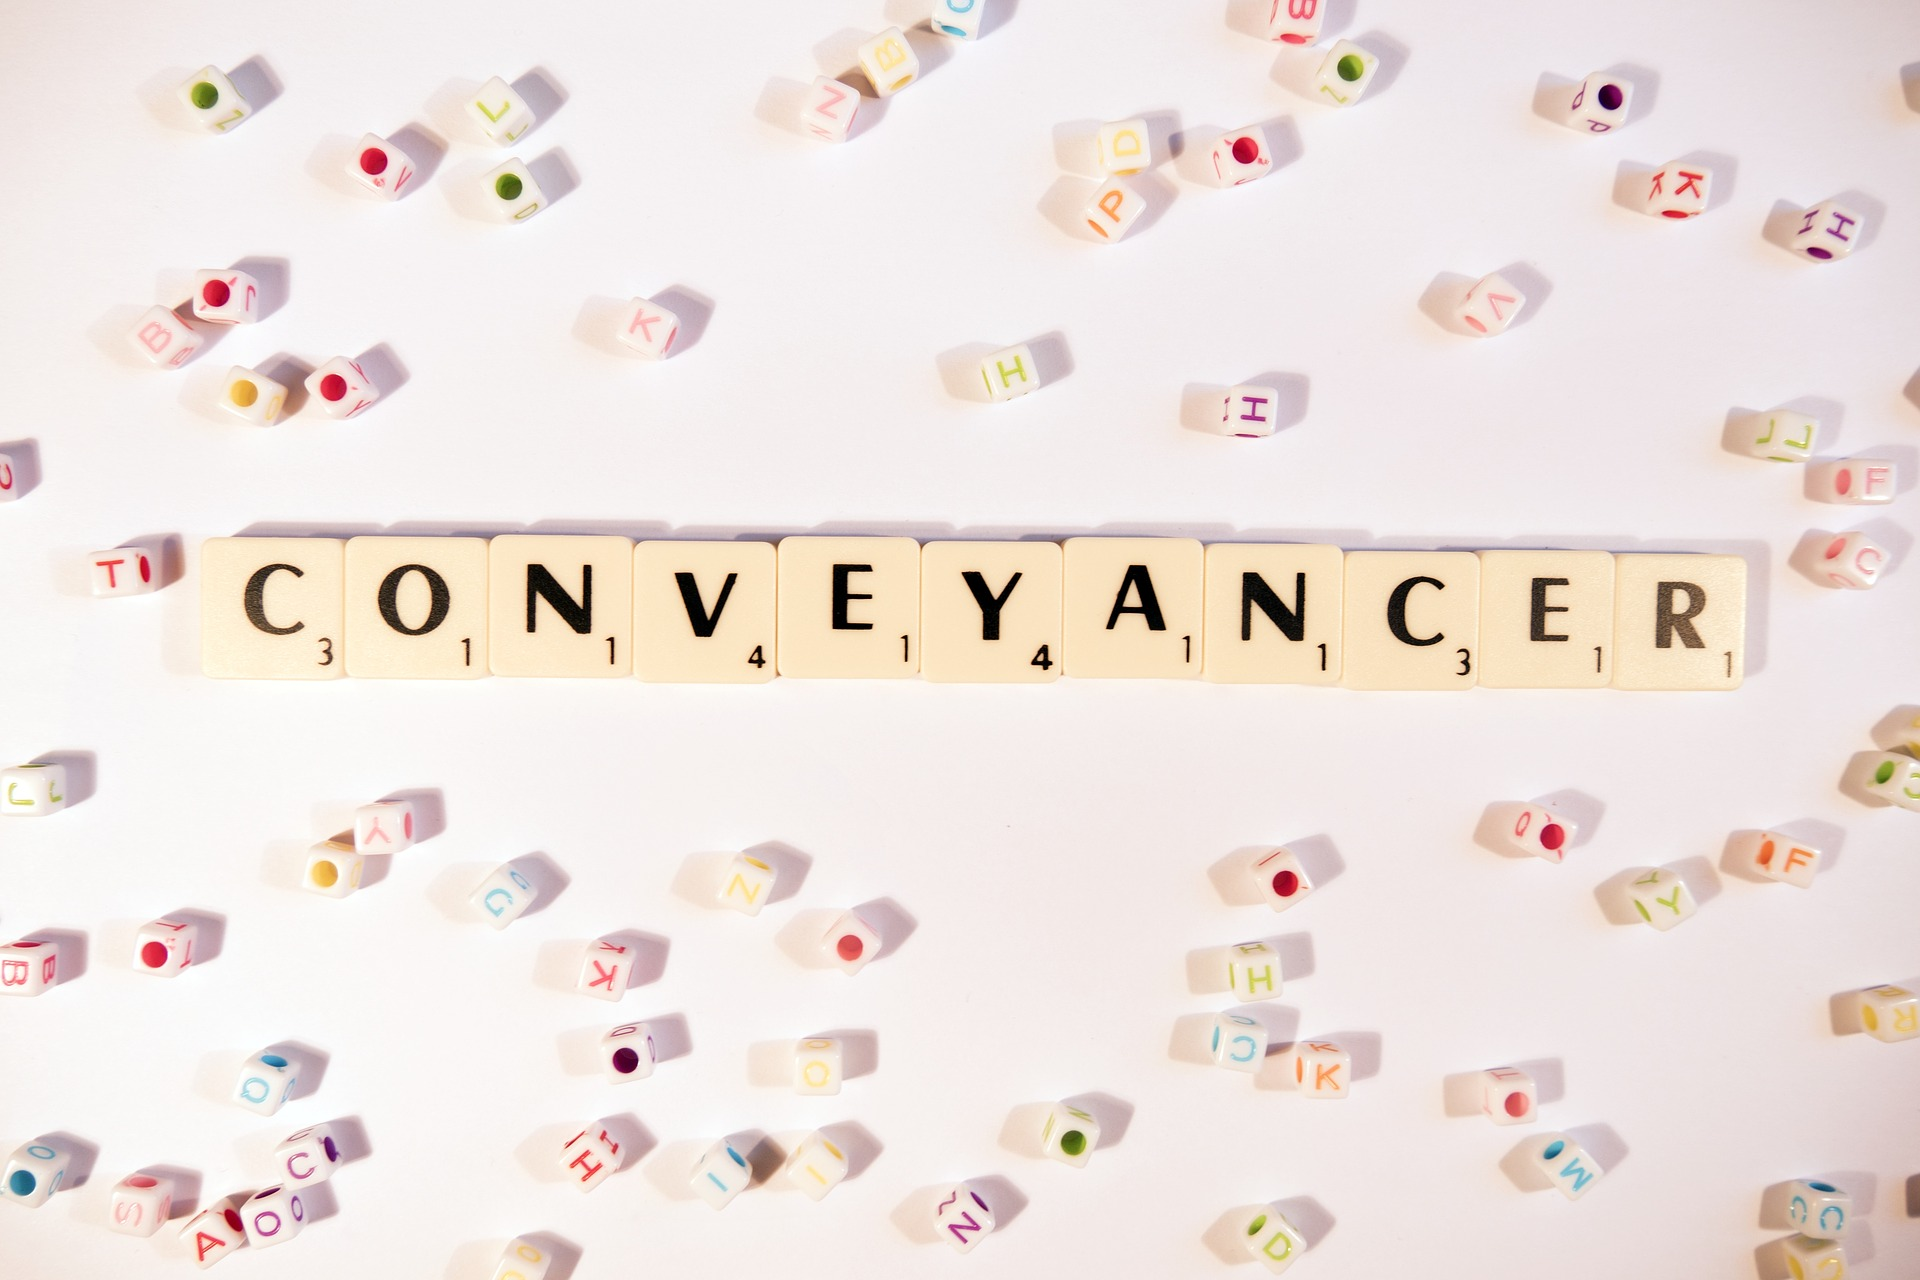 Should All Property Transfer Services Be Exclusively Reserved For Conveyancers?